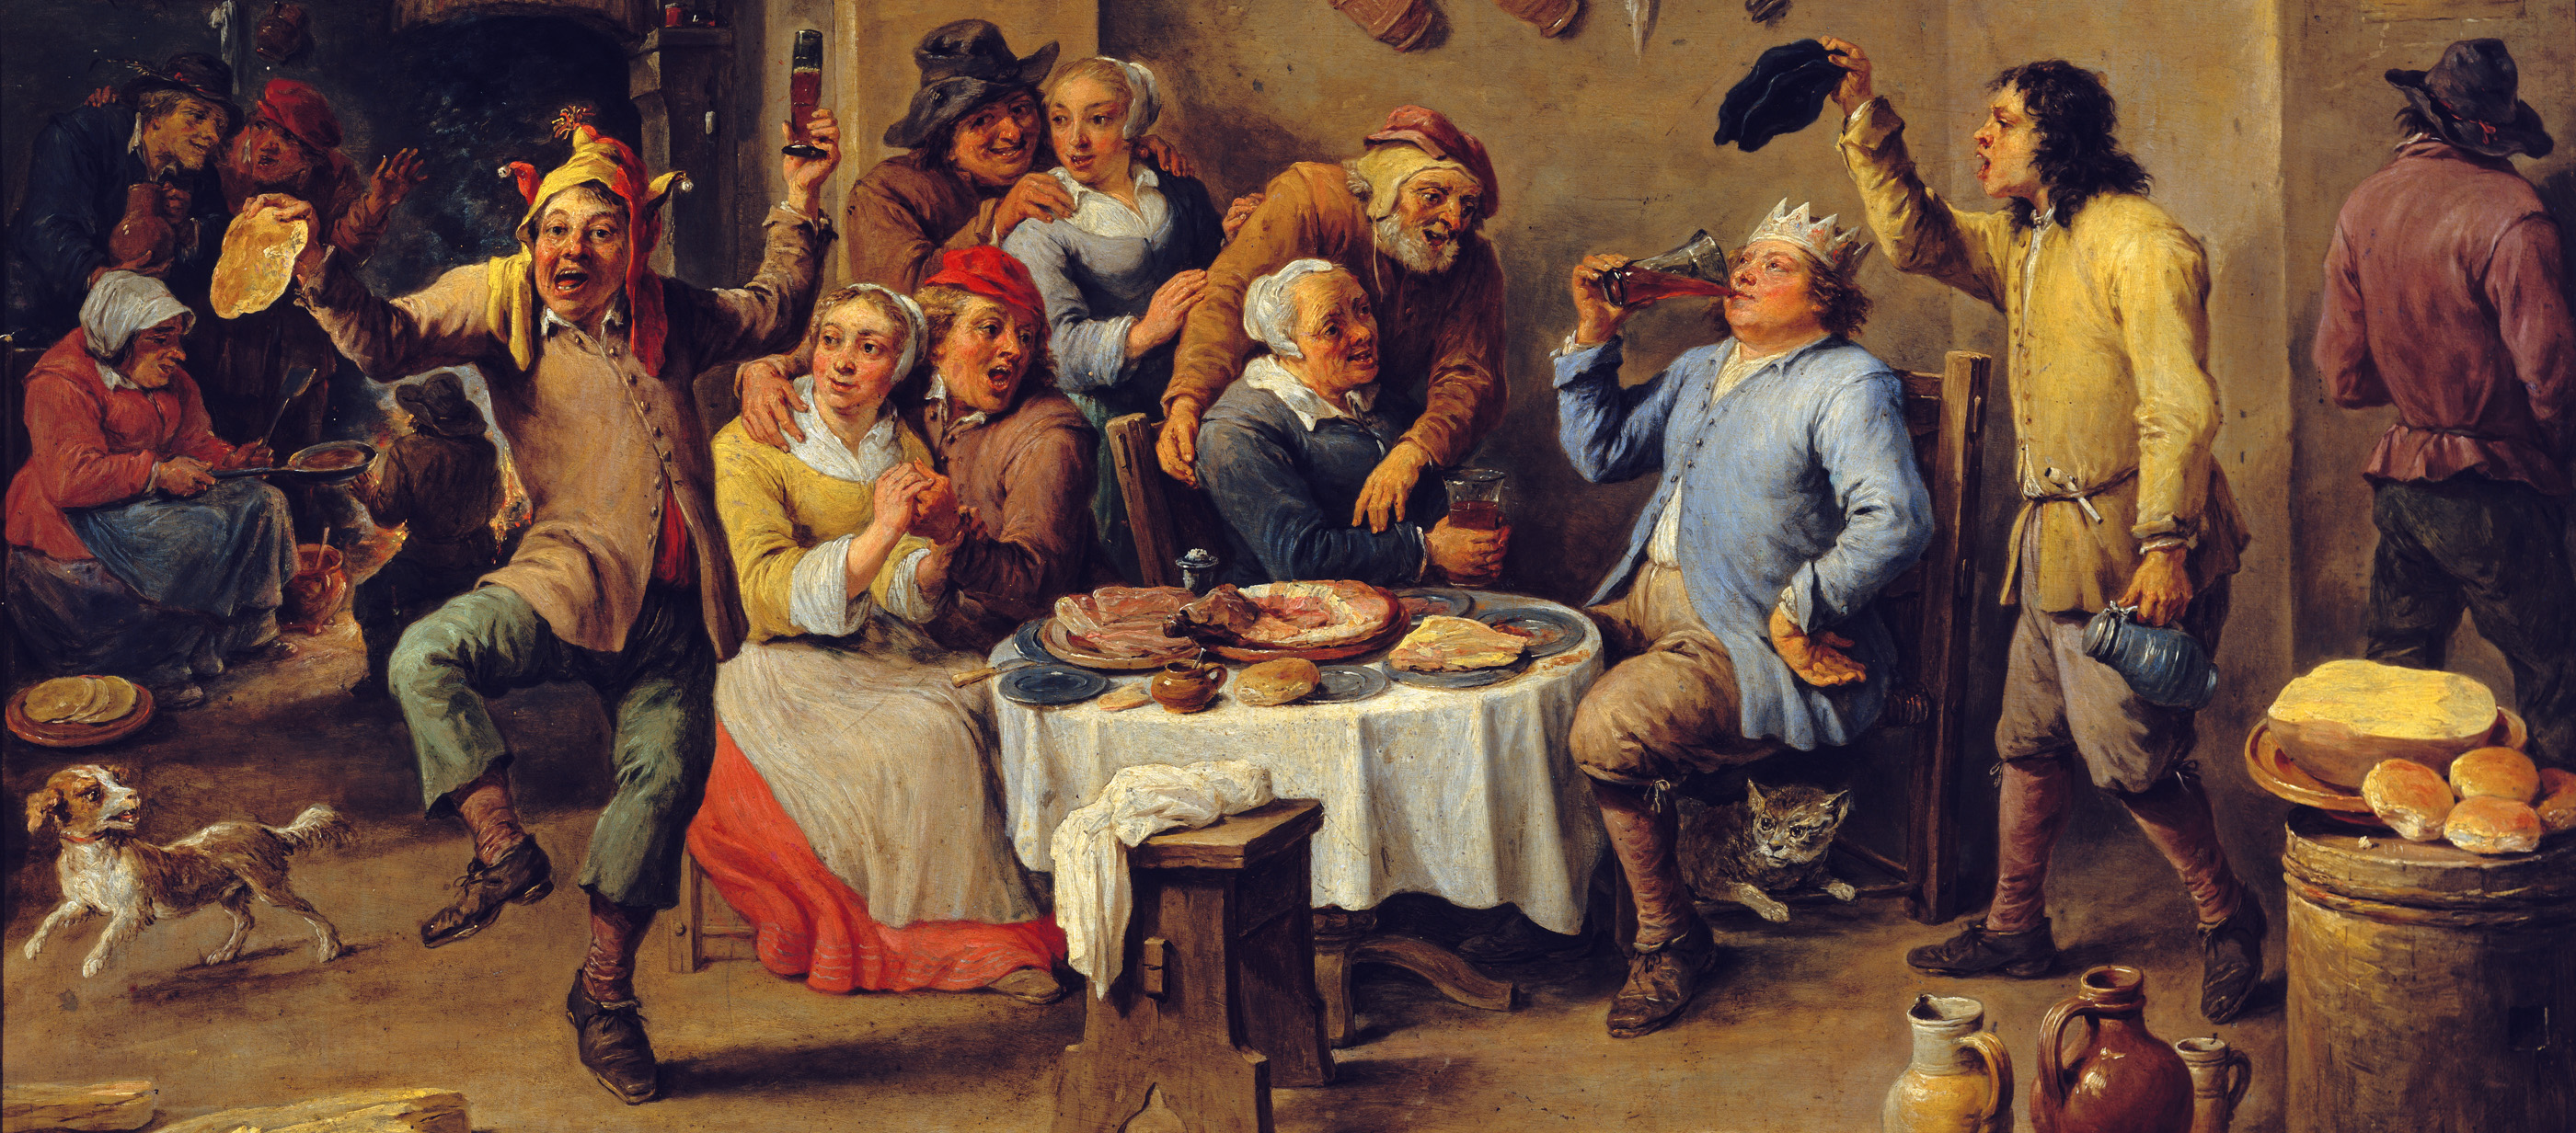 Twelfth-night (The King Drinks), by David Teniers the Younger,